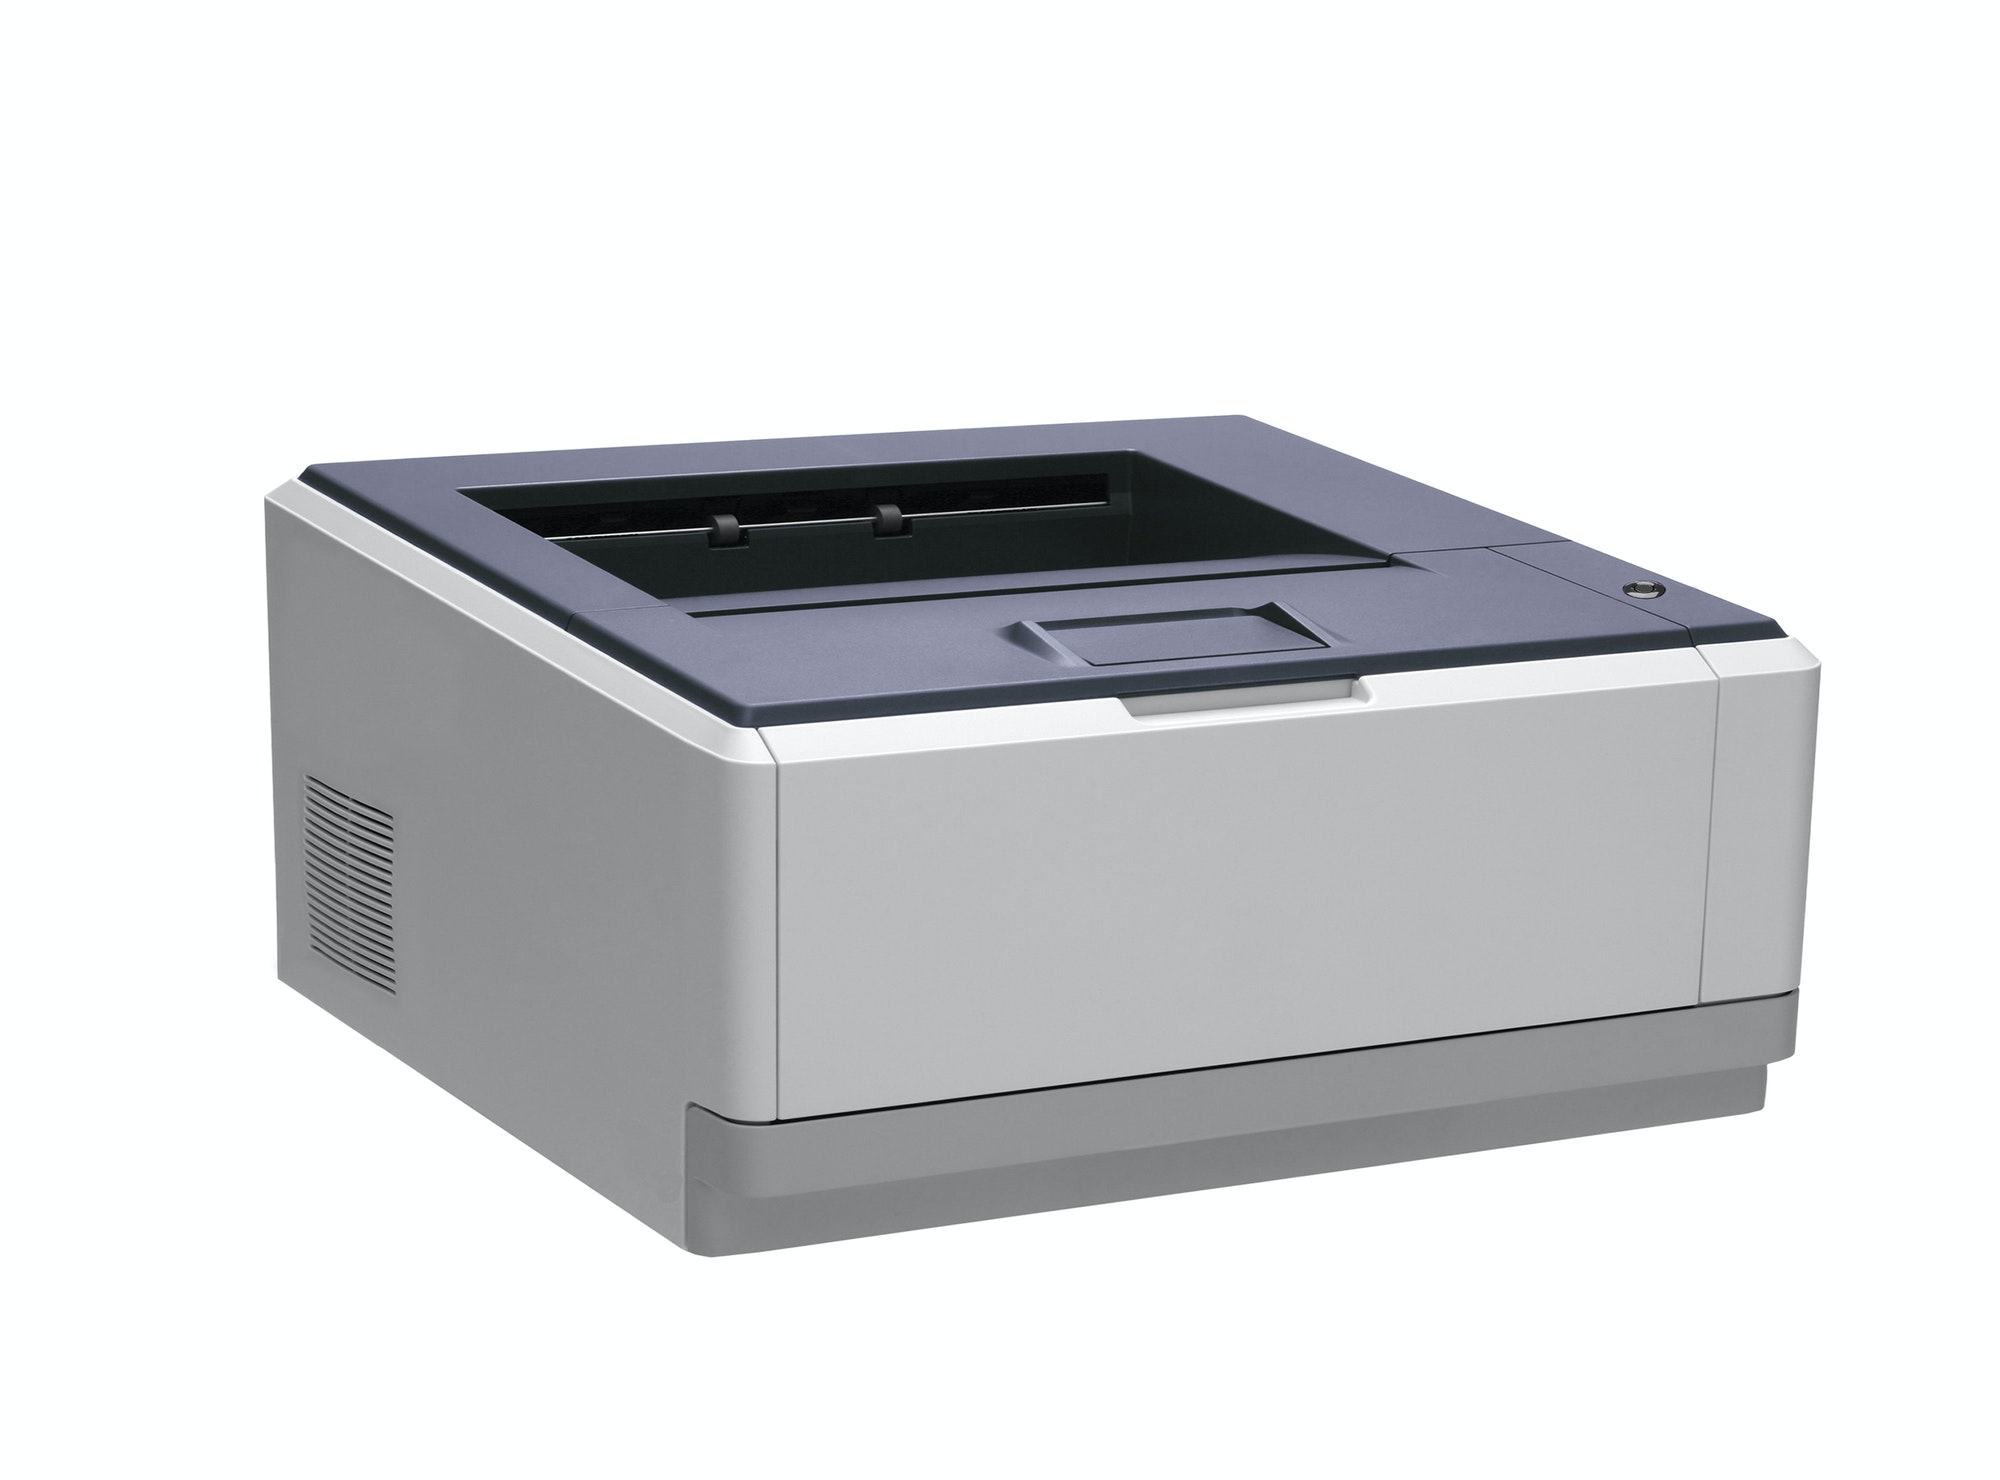 Printer. On a white background.